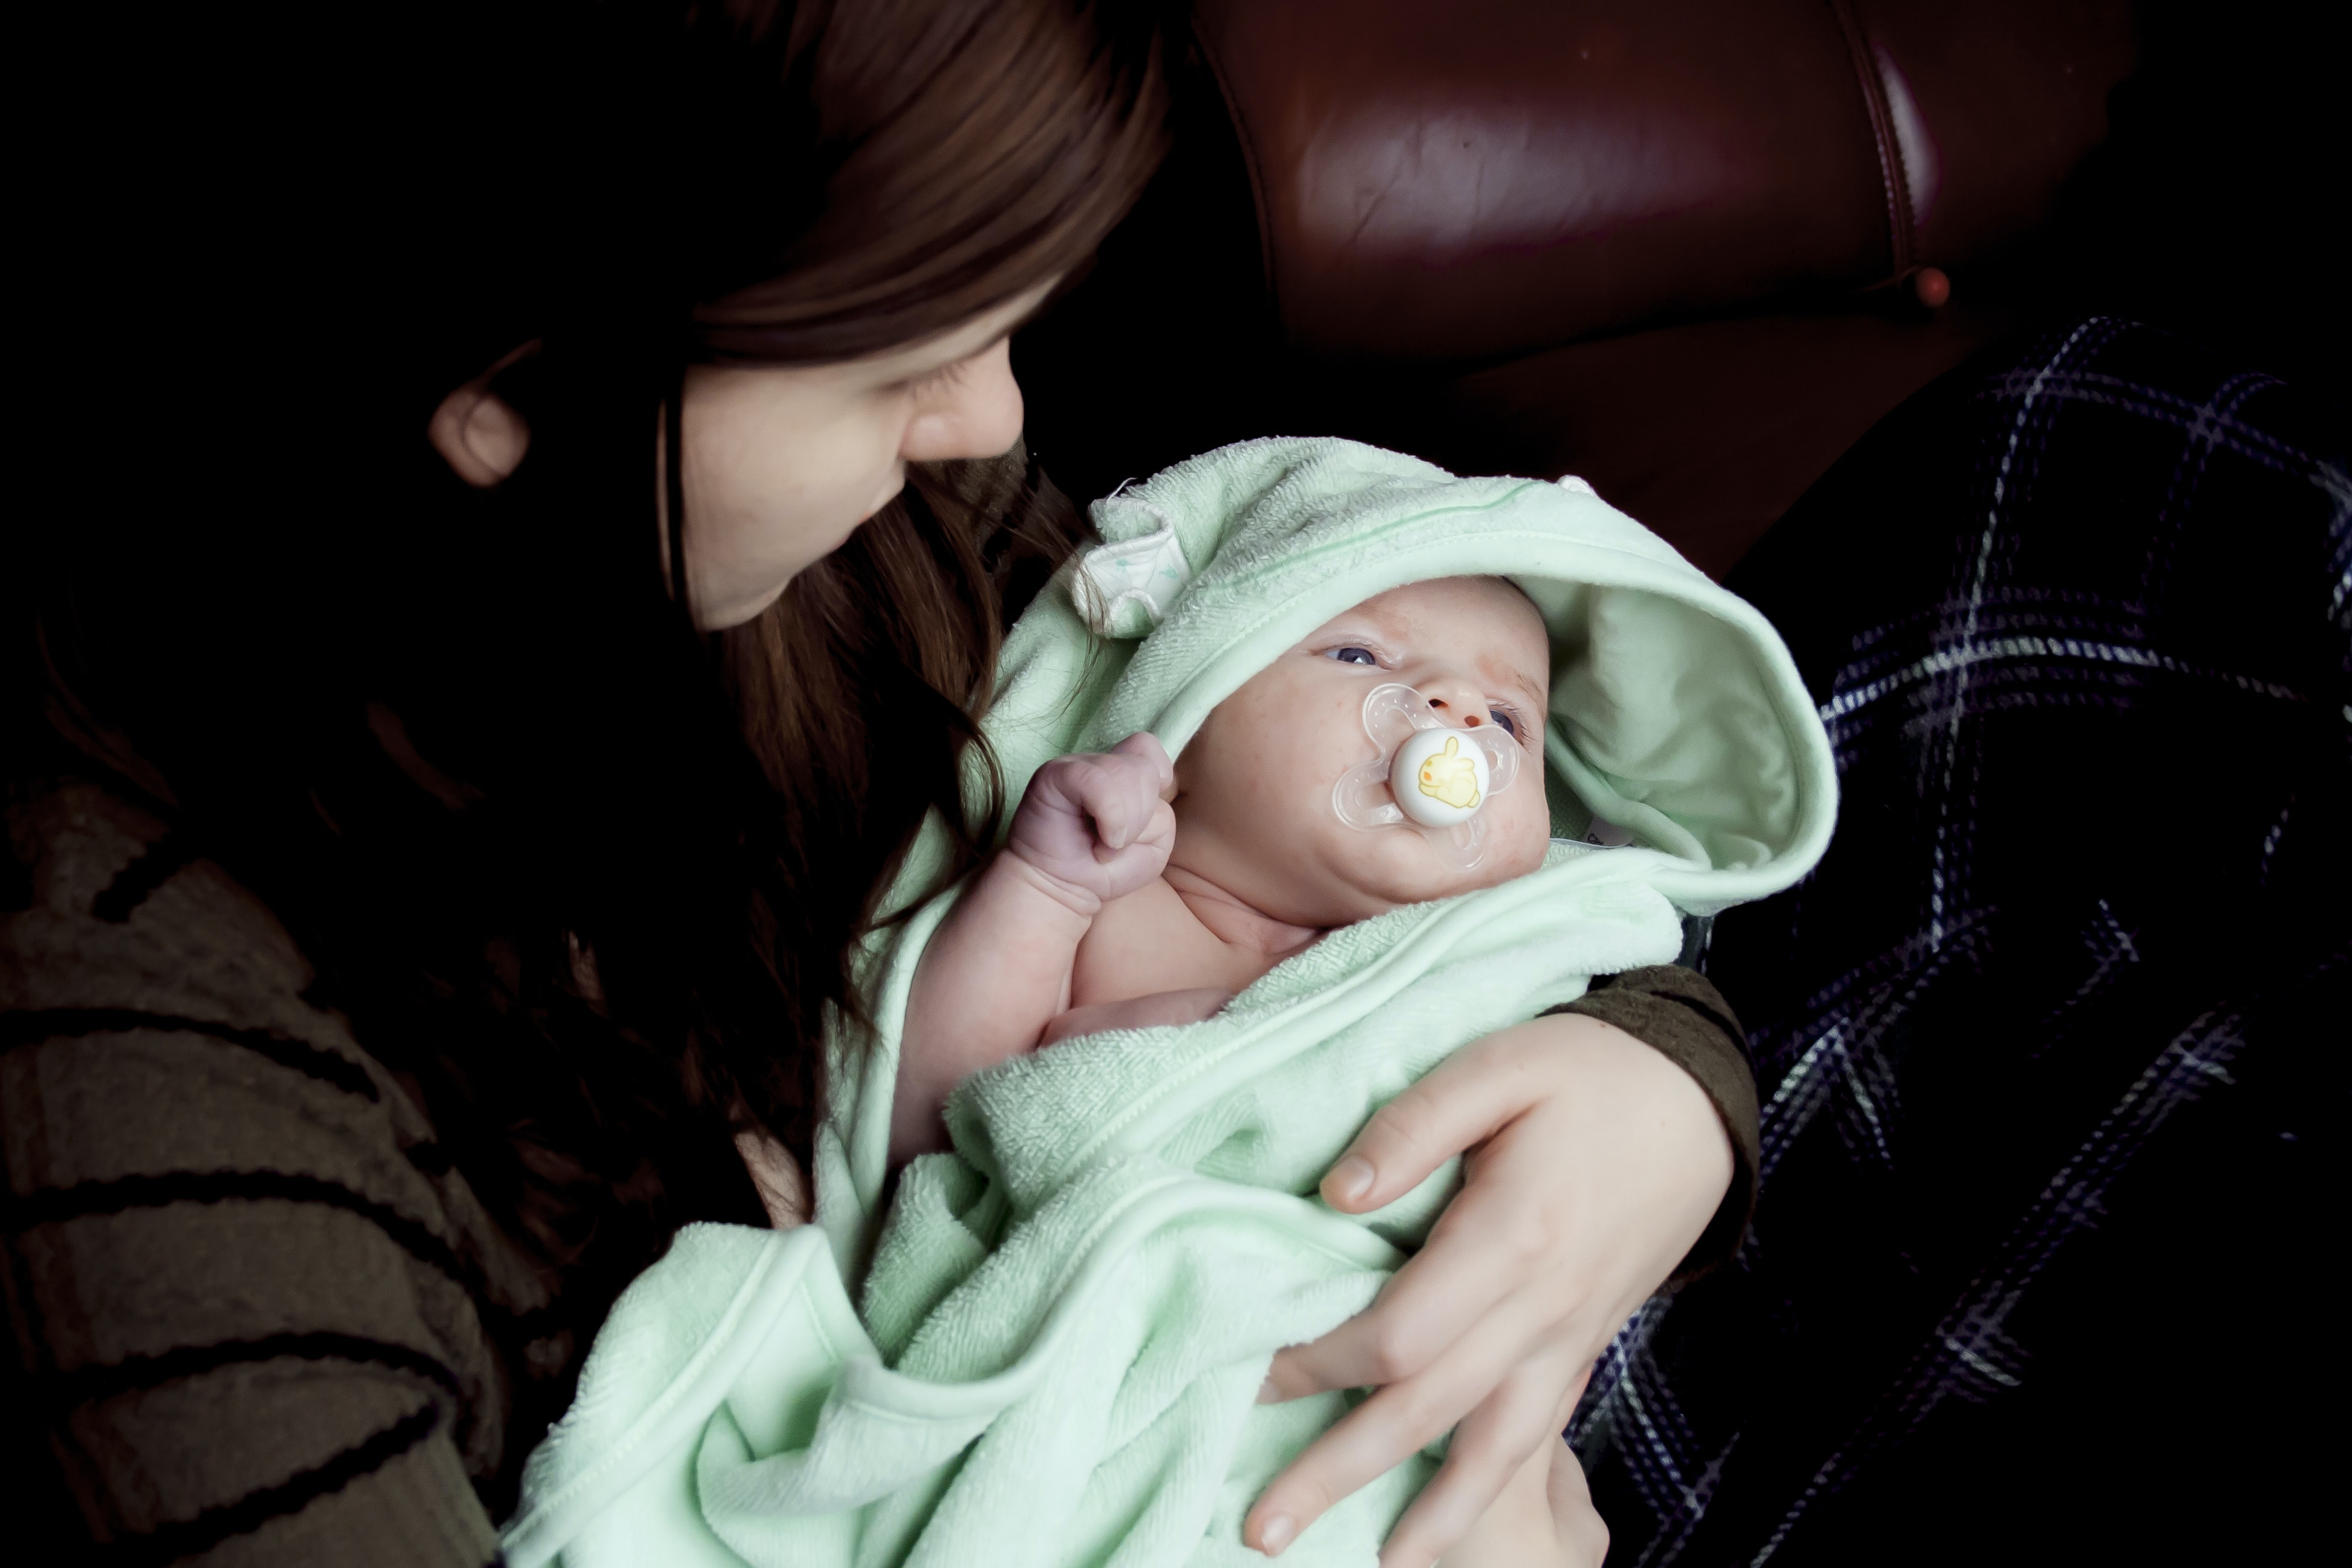 Infant lying in a teal blanket being cradled by a woman with reddish brown hair